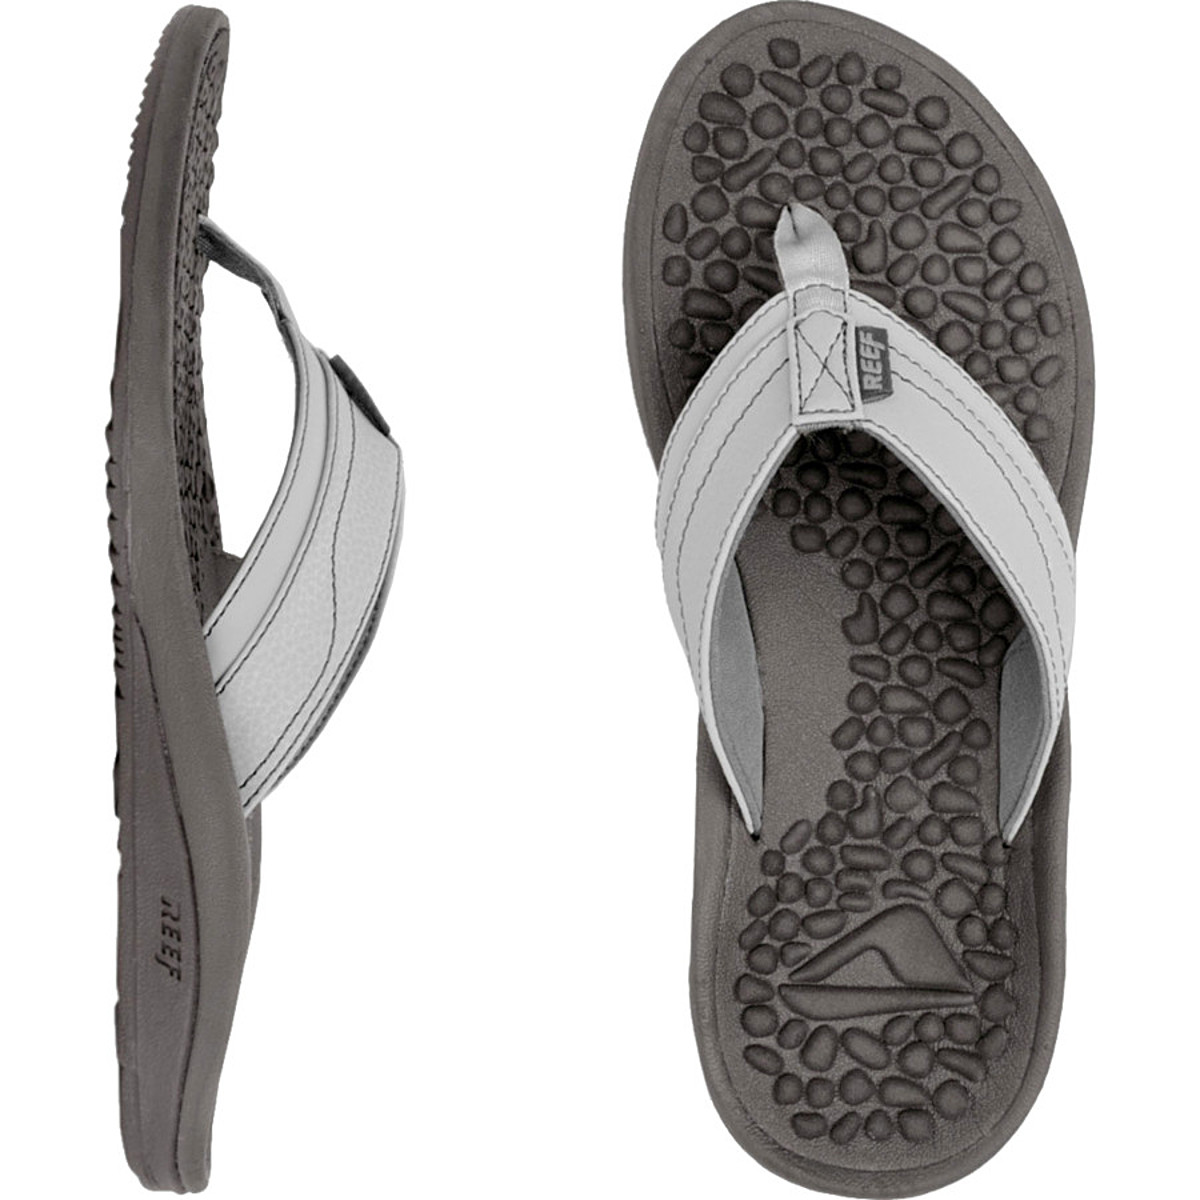 photo: Reef Playa Negra Flip Flops, Brown flip-flop